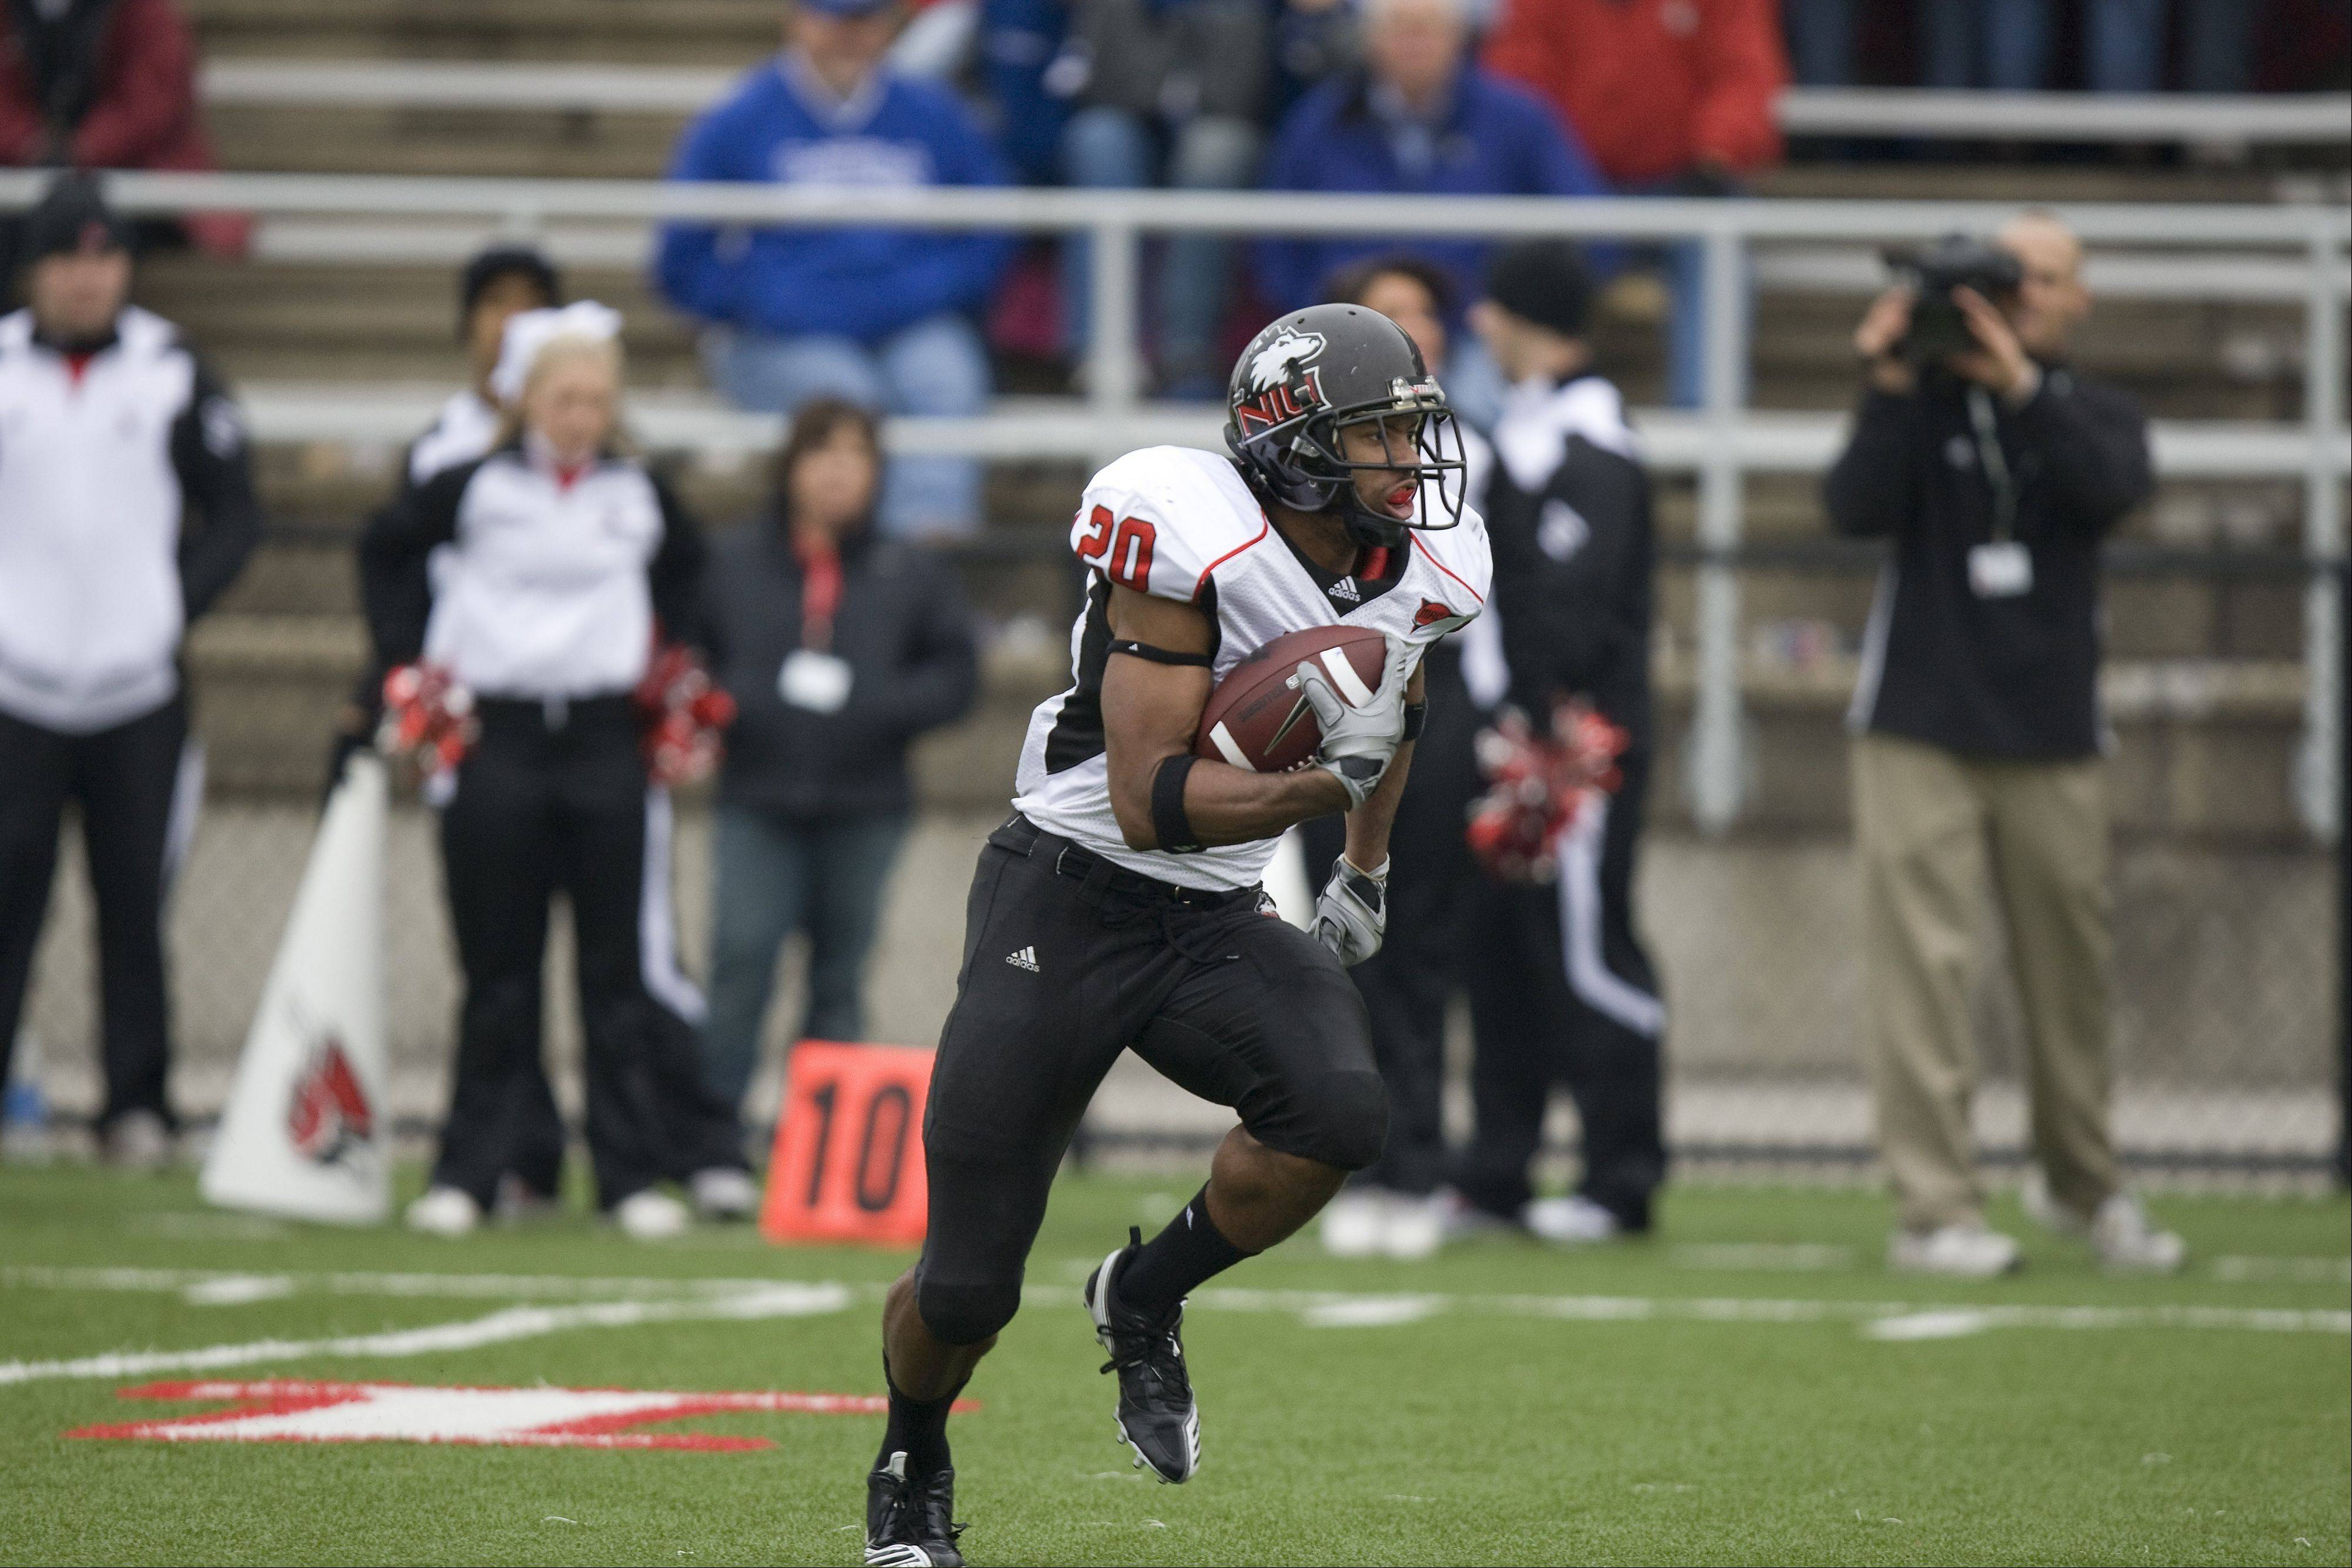 NIU junior Tommy Davis is one of 50 players named to the 2011 Watch List for the Paul Hornung Award. The NIU speedster averages 24.0 yards per kickoff return last season and has scored a touchdown via kickoffs in each of his first two seasons at Northern Illinois.